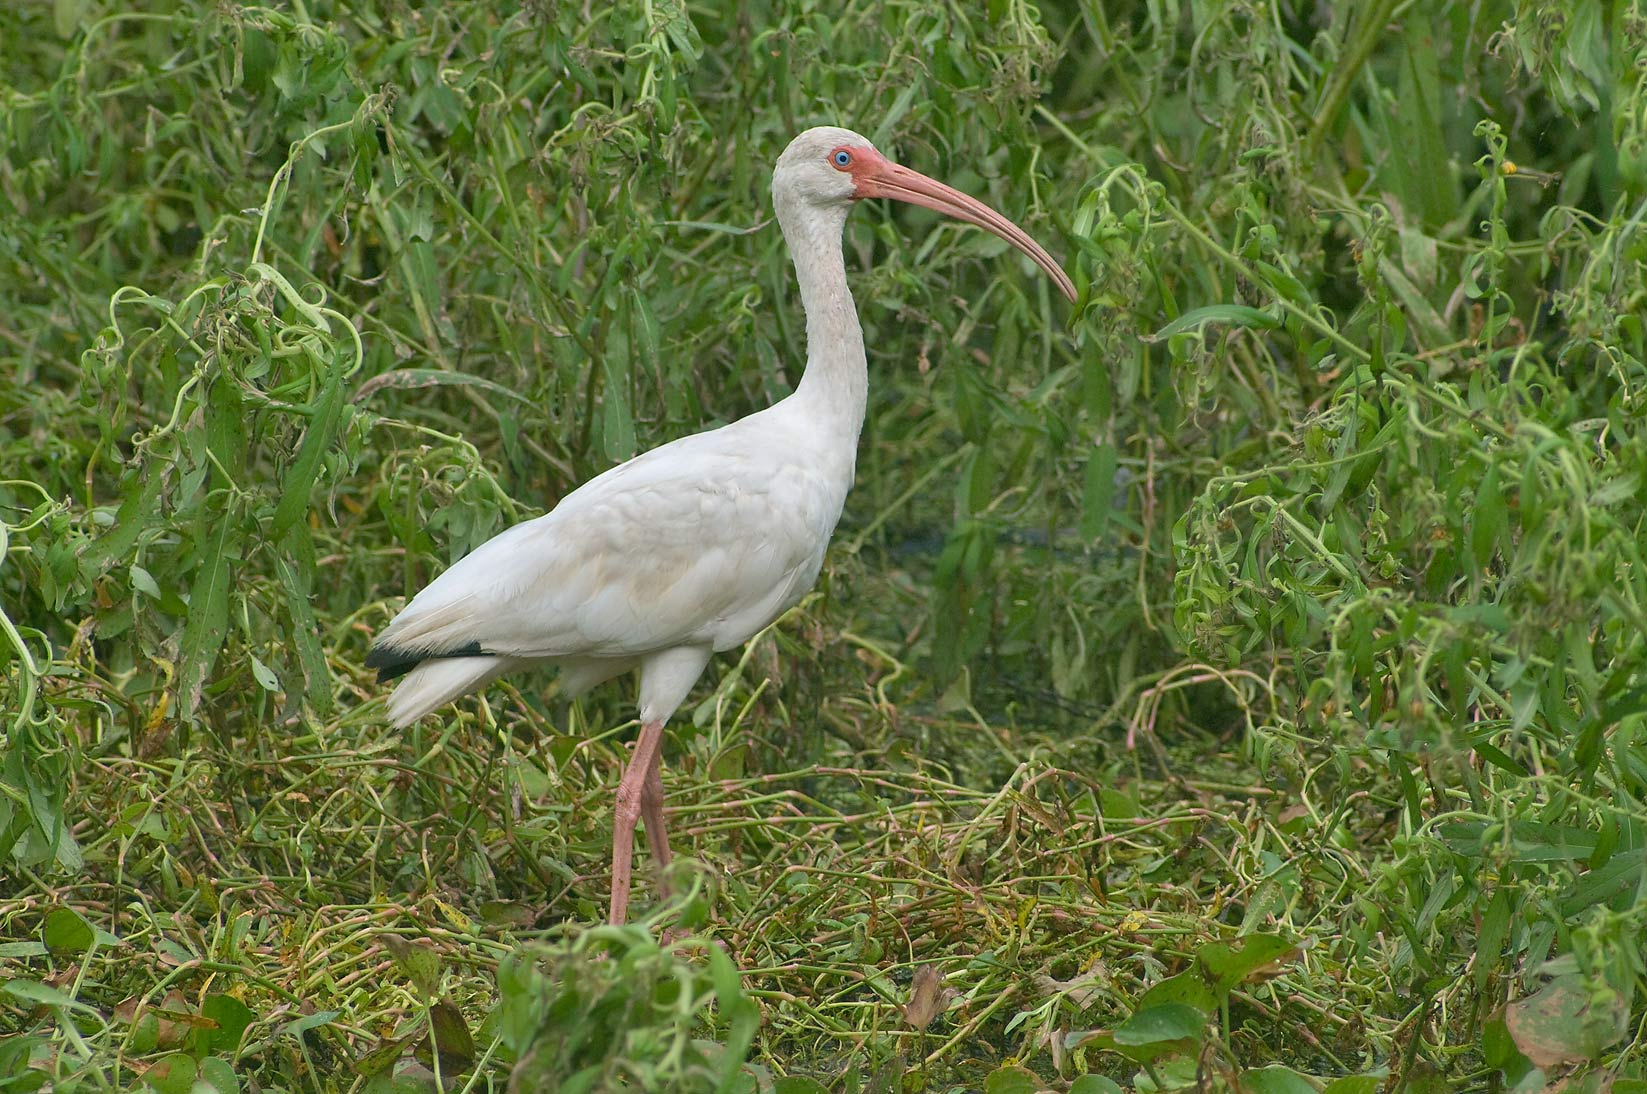 White ibis (Eudocimus albus) bird with long...Bend State Park. Needville, Texas